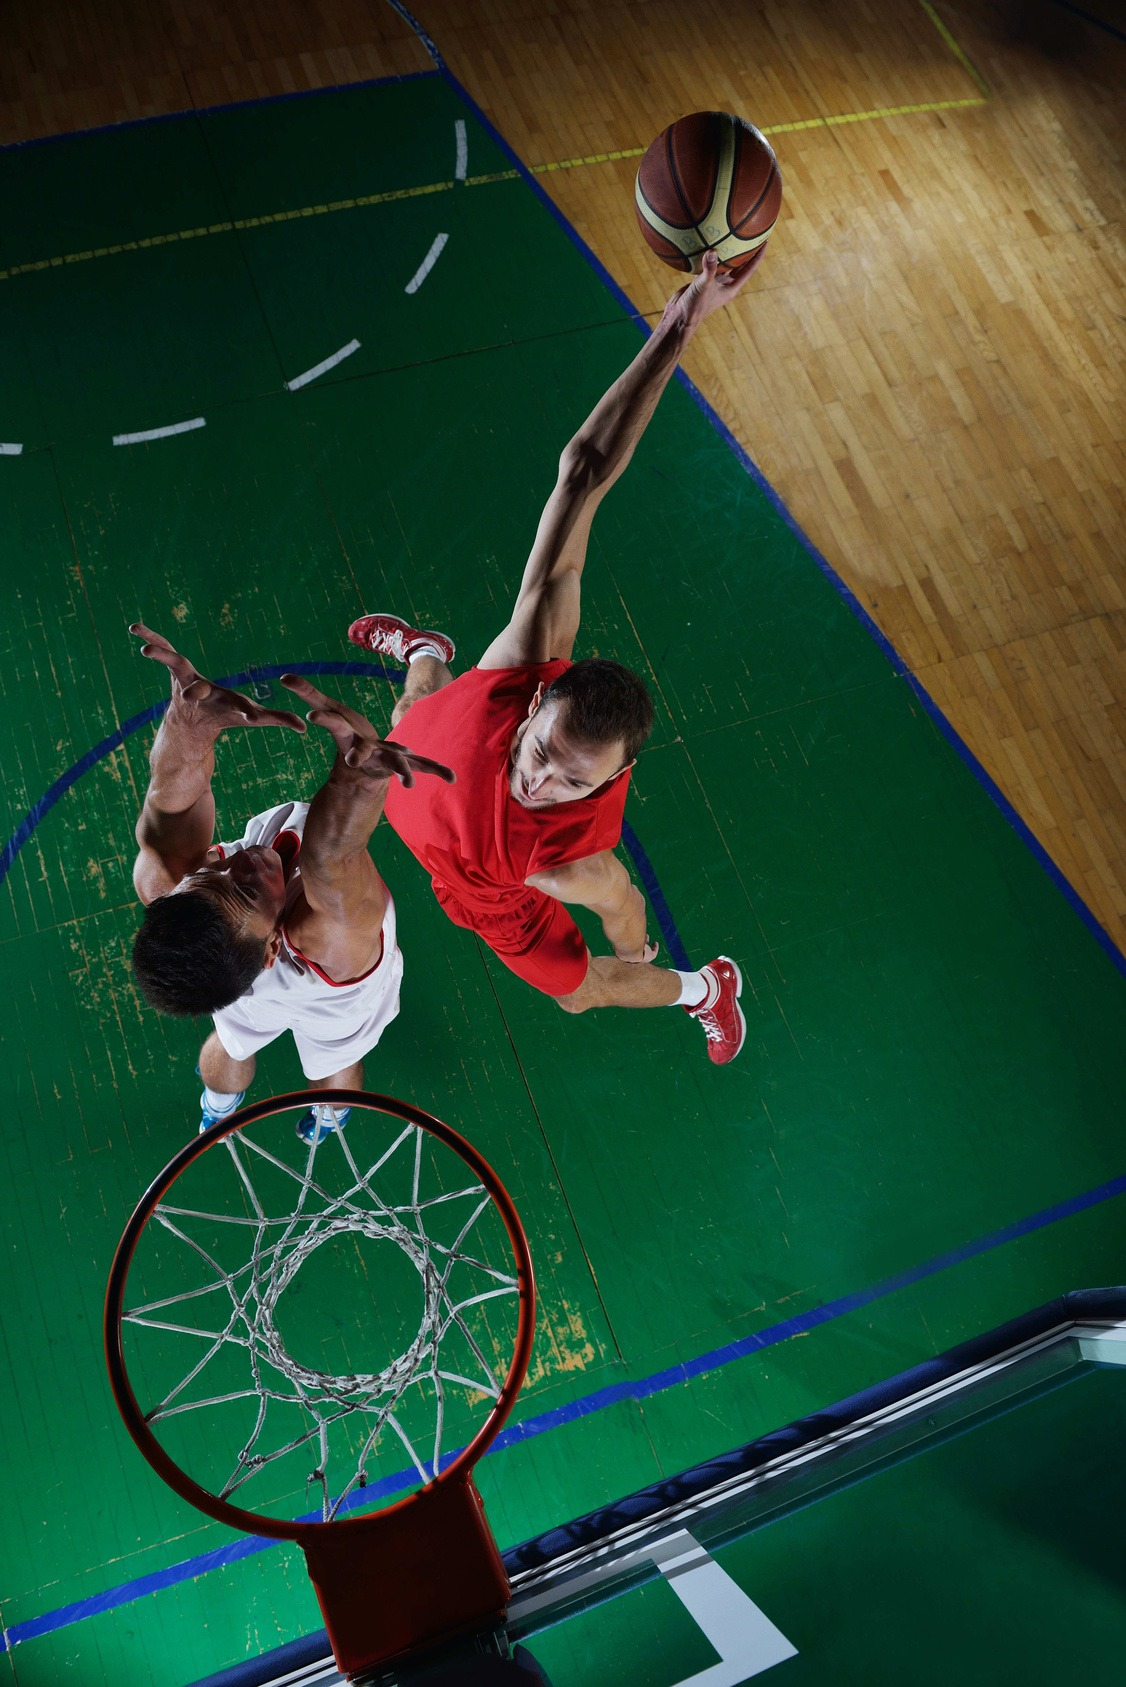 Basketball Injury? Improve Quality of Life? Ankle Strain? Your Best Pain Management Orthopedic / Geriatric / Sport Rehabilitation Therapists (PT) are here to help you in Columbia, HoCo, MD!